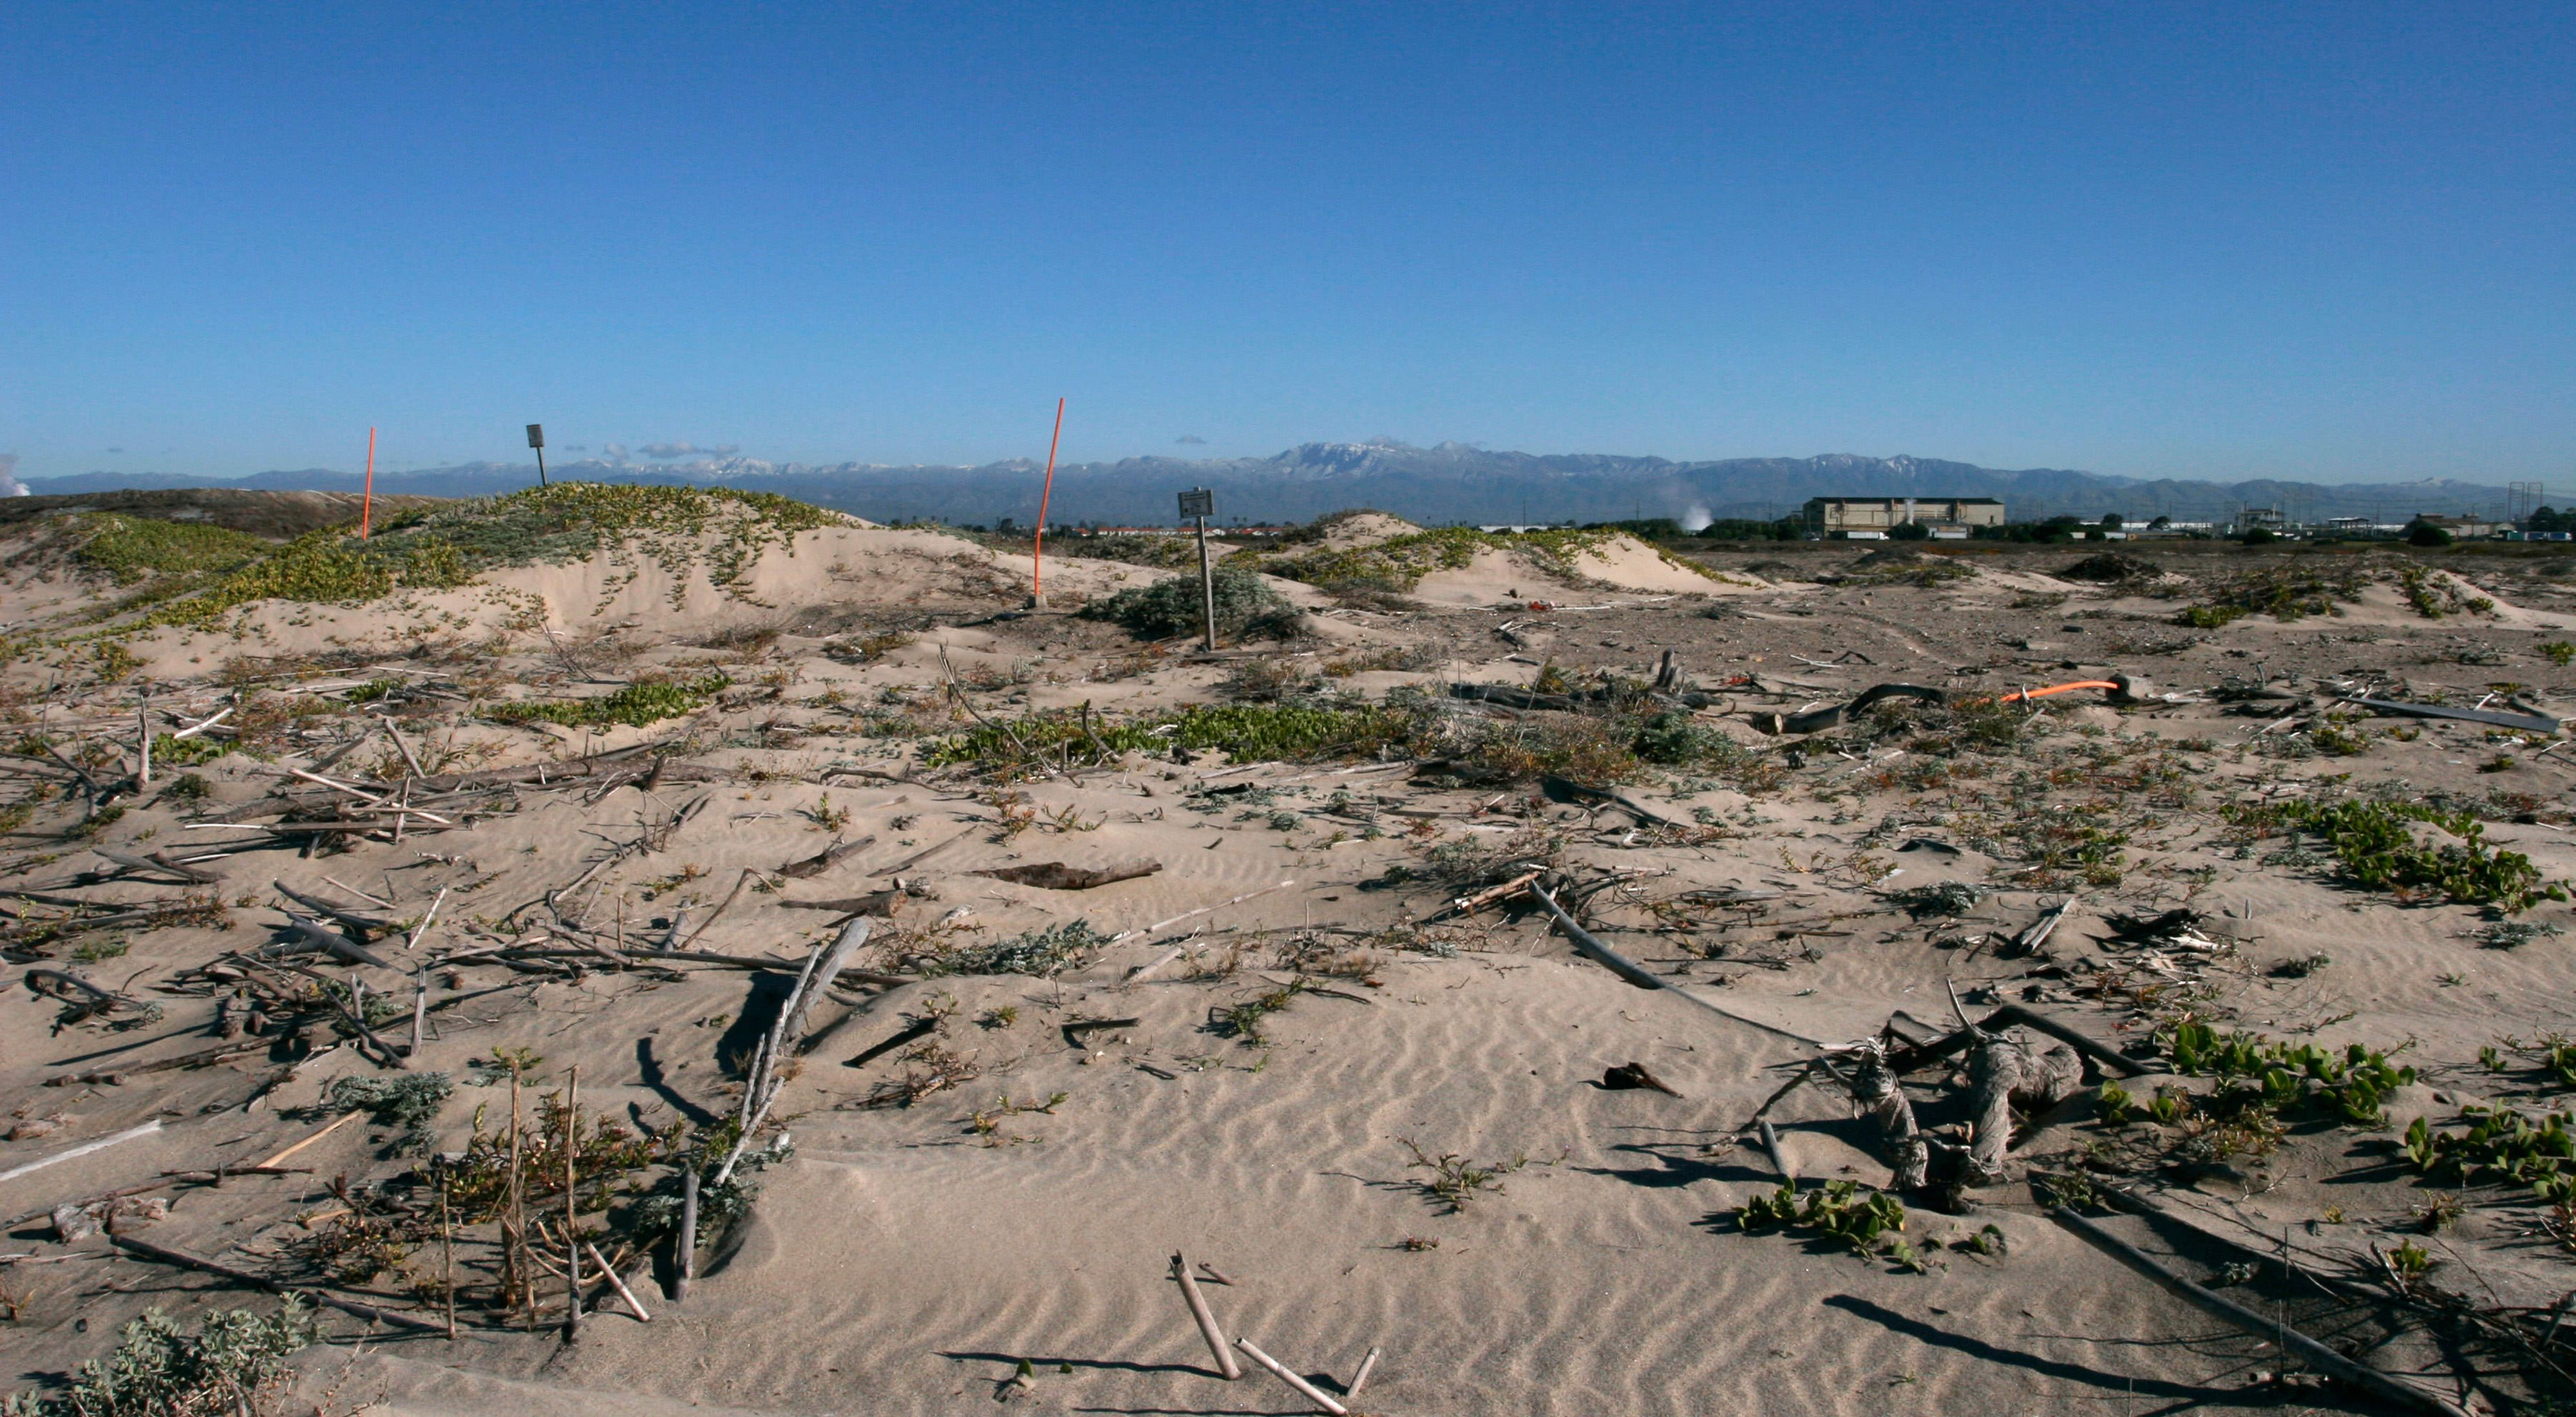 Northeastern view of the front dunes at Ormond Beach, a protected coastal wetlands area and bird nesting site in Ventura County, southern California.